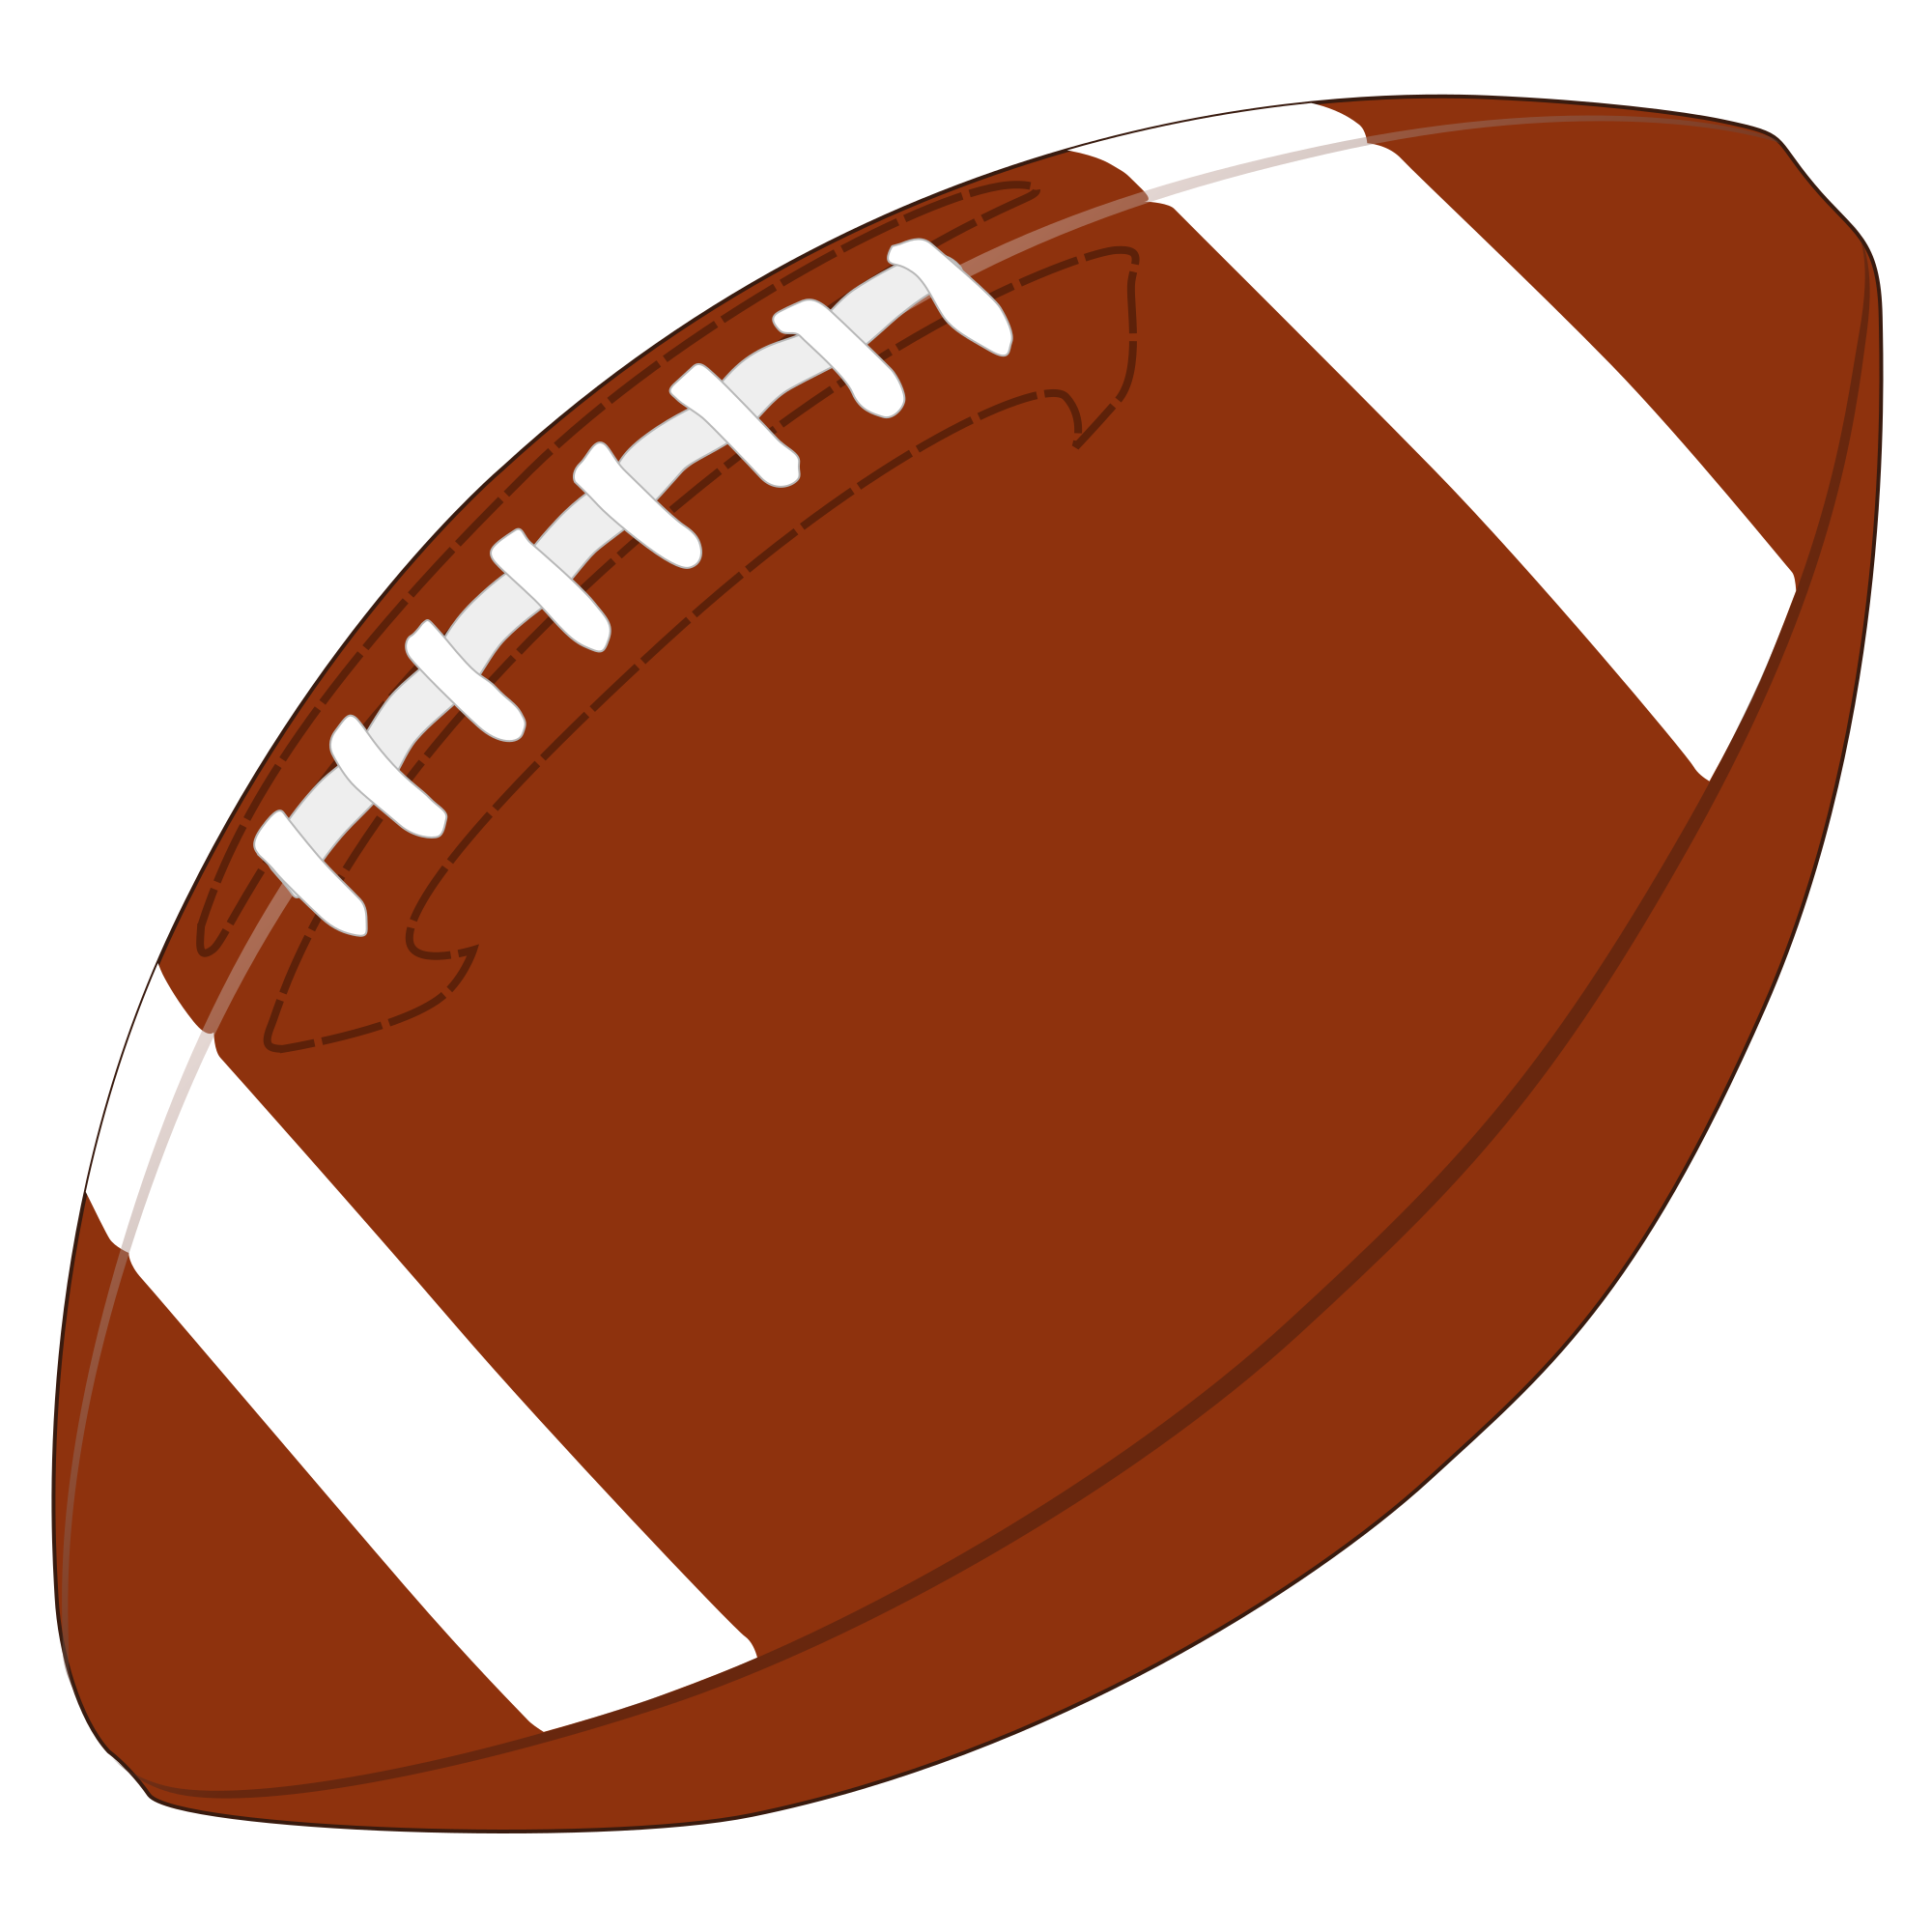 Football png. American sport images free